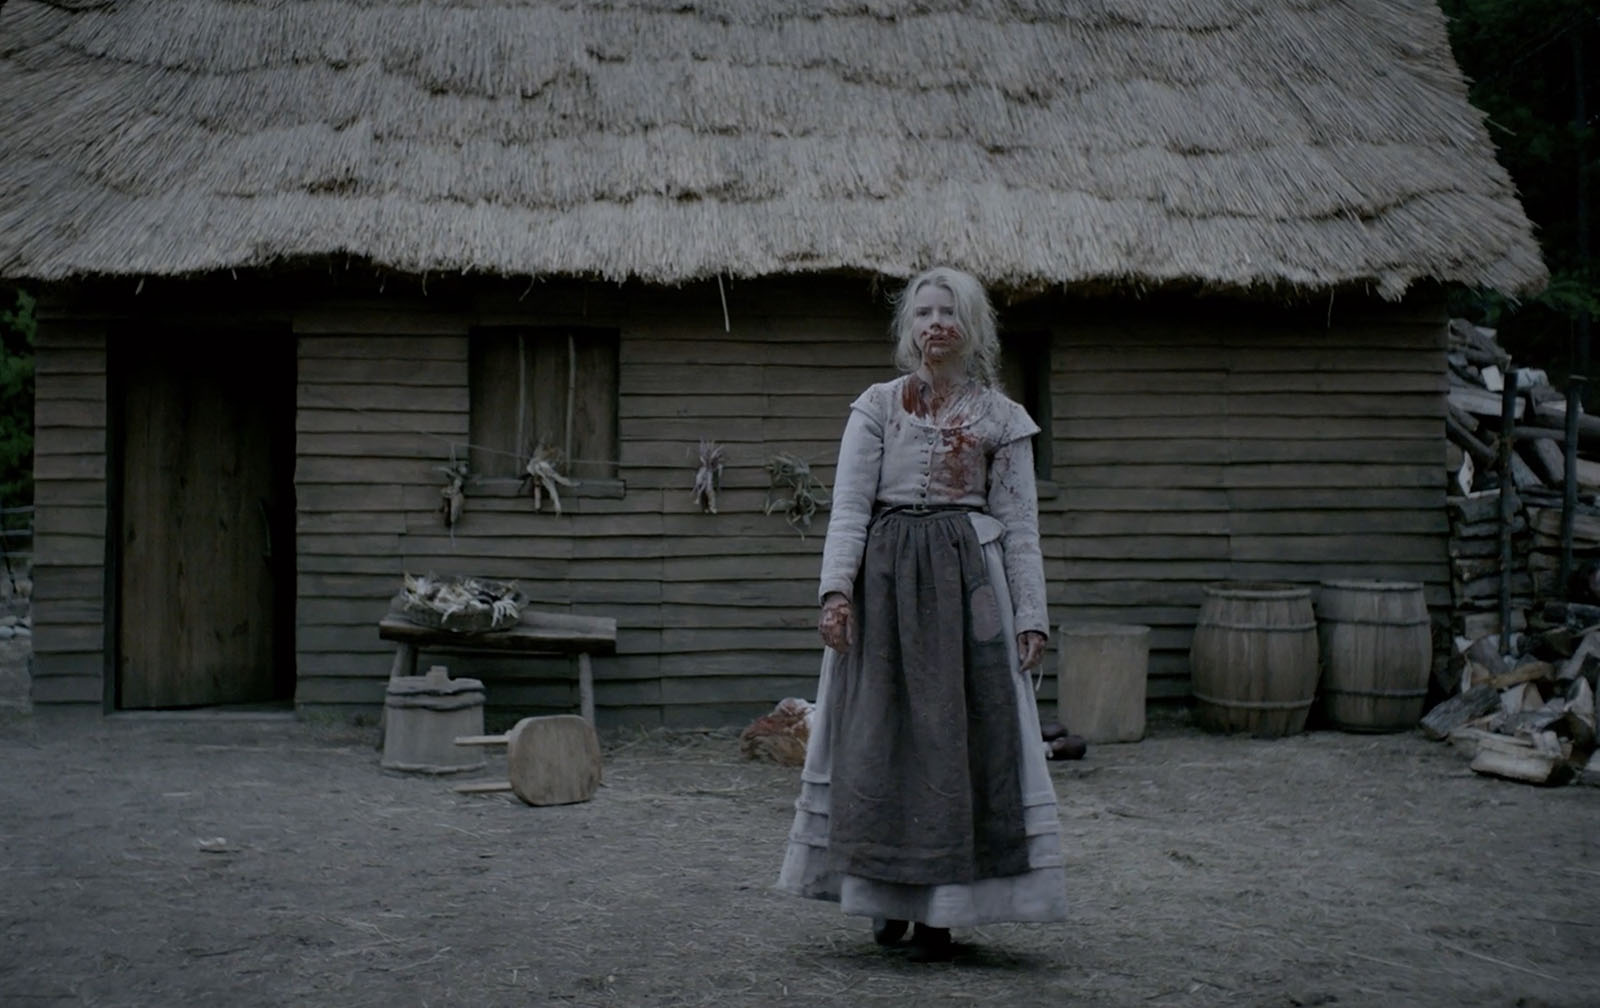 Screenshot from THE WITCH of a white young girl in 1600s clothes standing dazed and bloodied outside of a rustic house